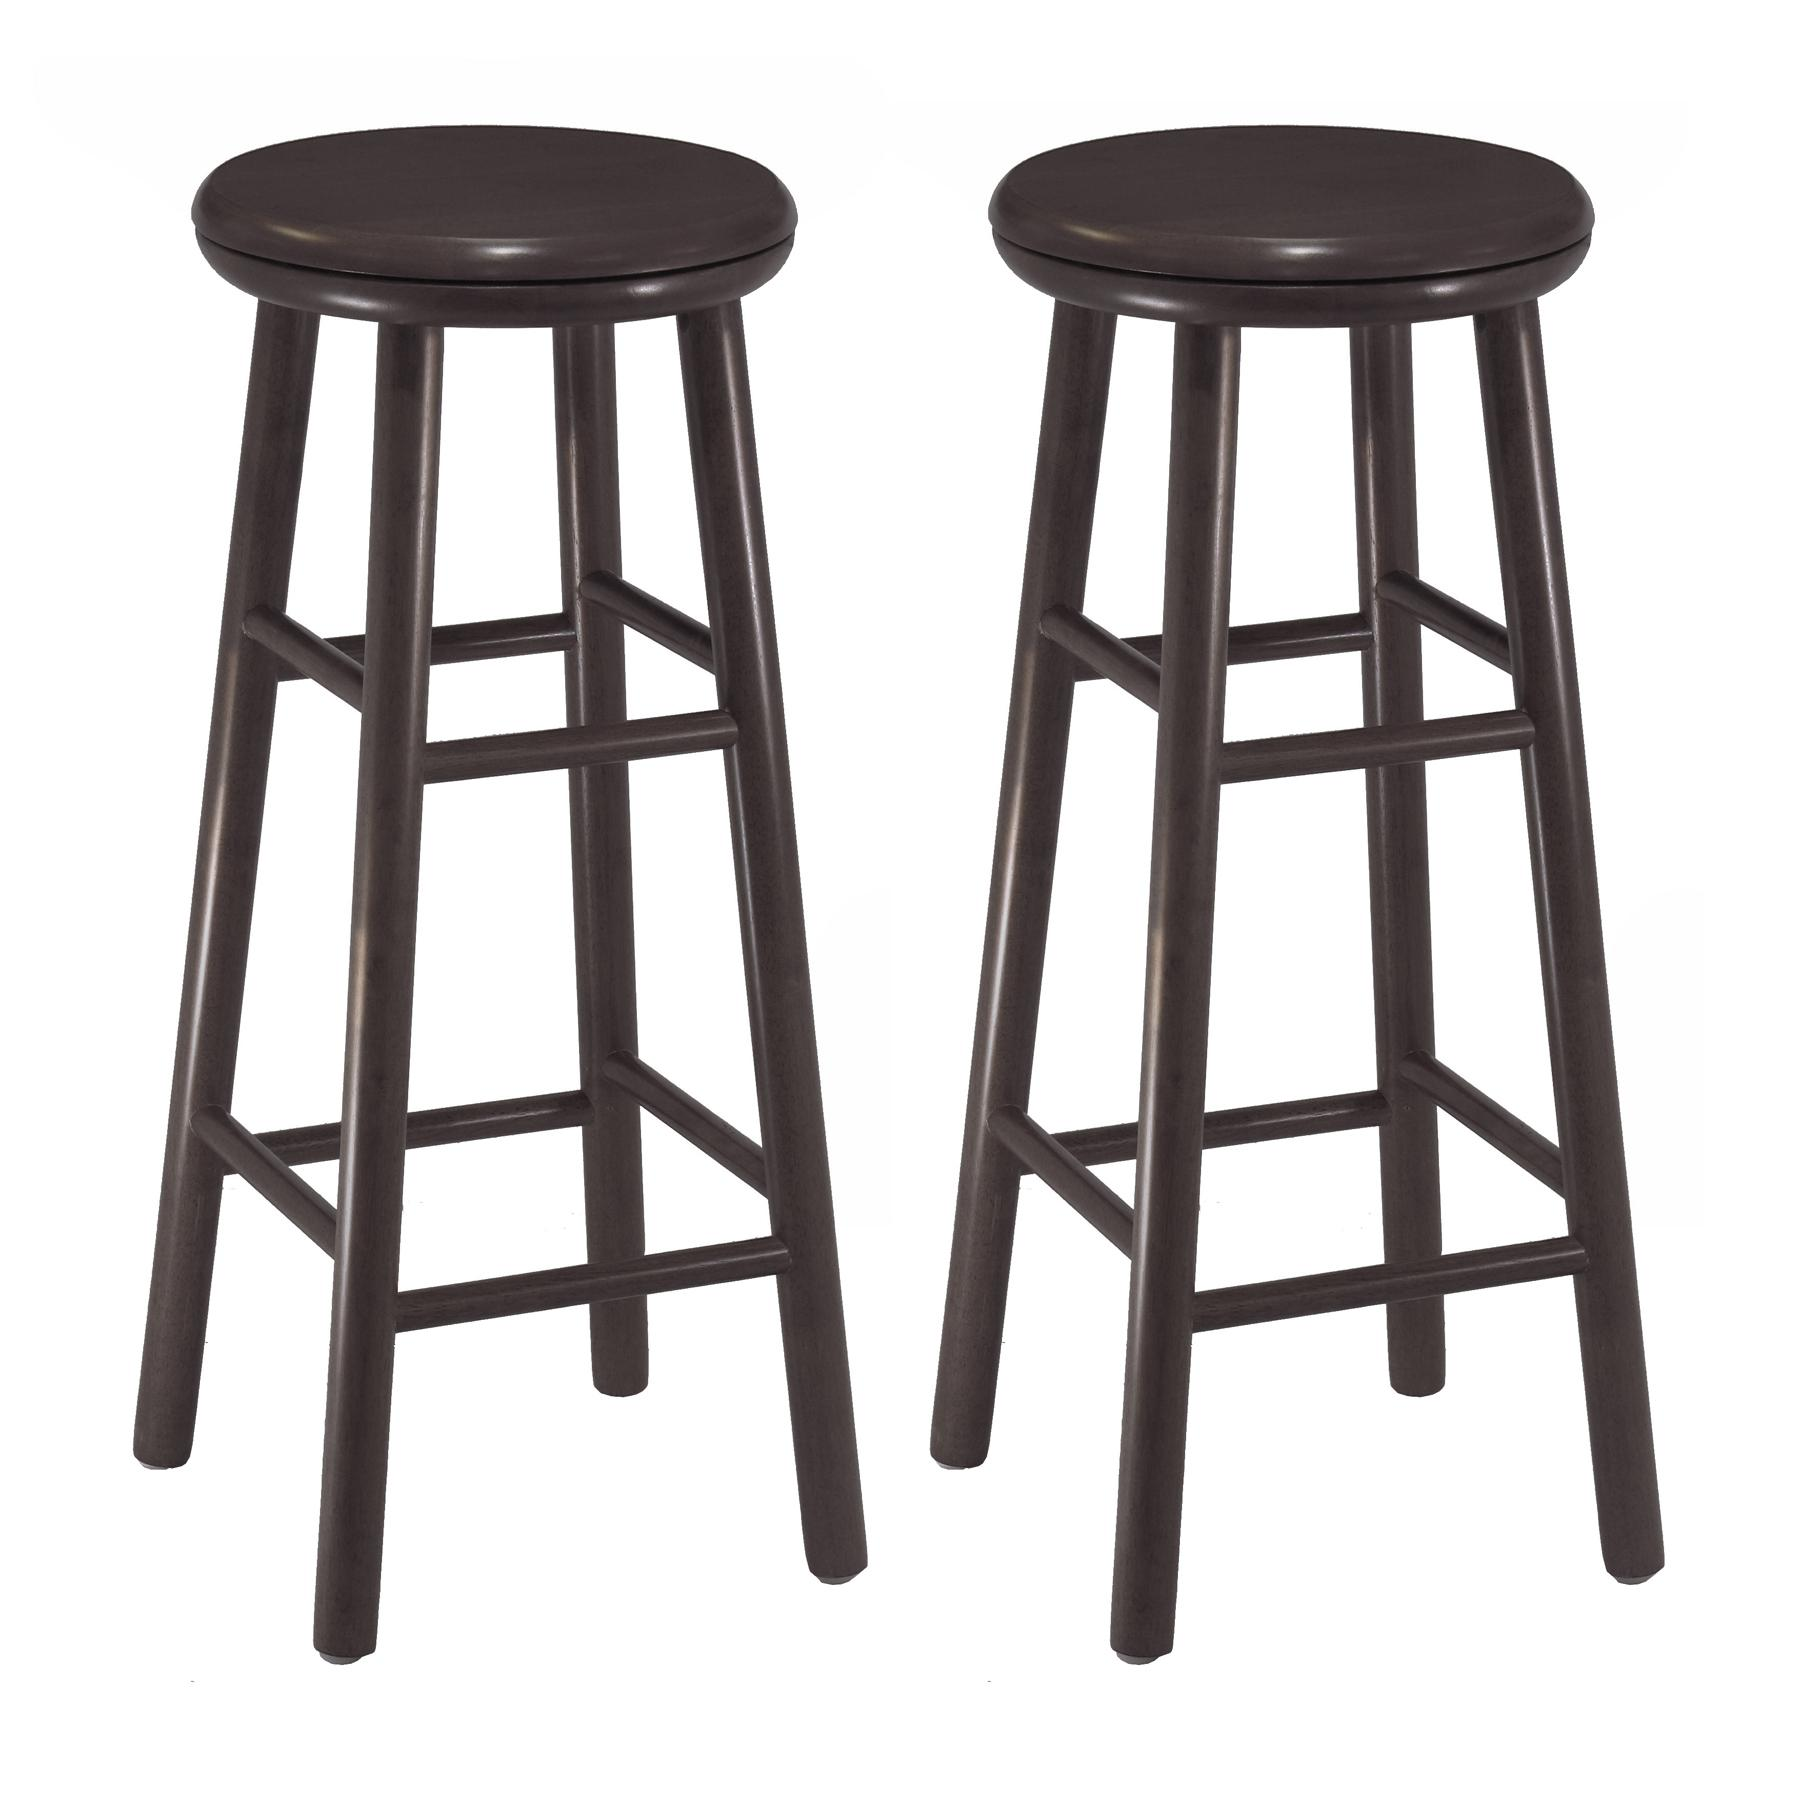 View larger  sc 1 st  Amazon.com & Amazon.com: Winsome Wood 30-Inch Swivel Bar Stools Dark Espresso ... islam-shia.org